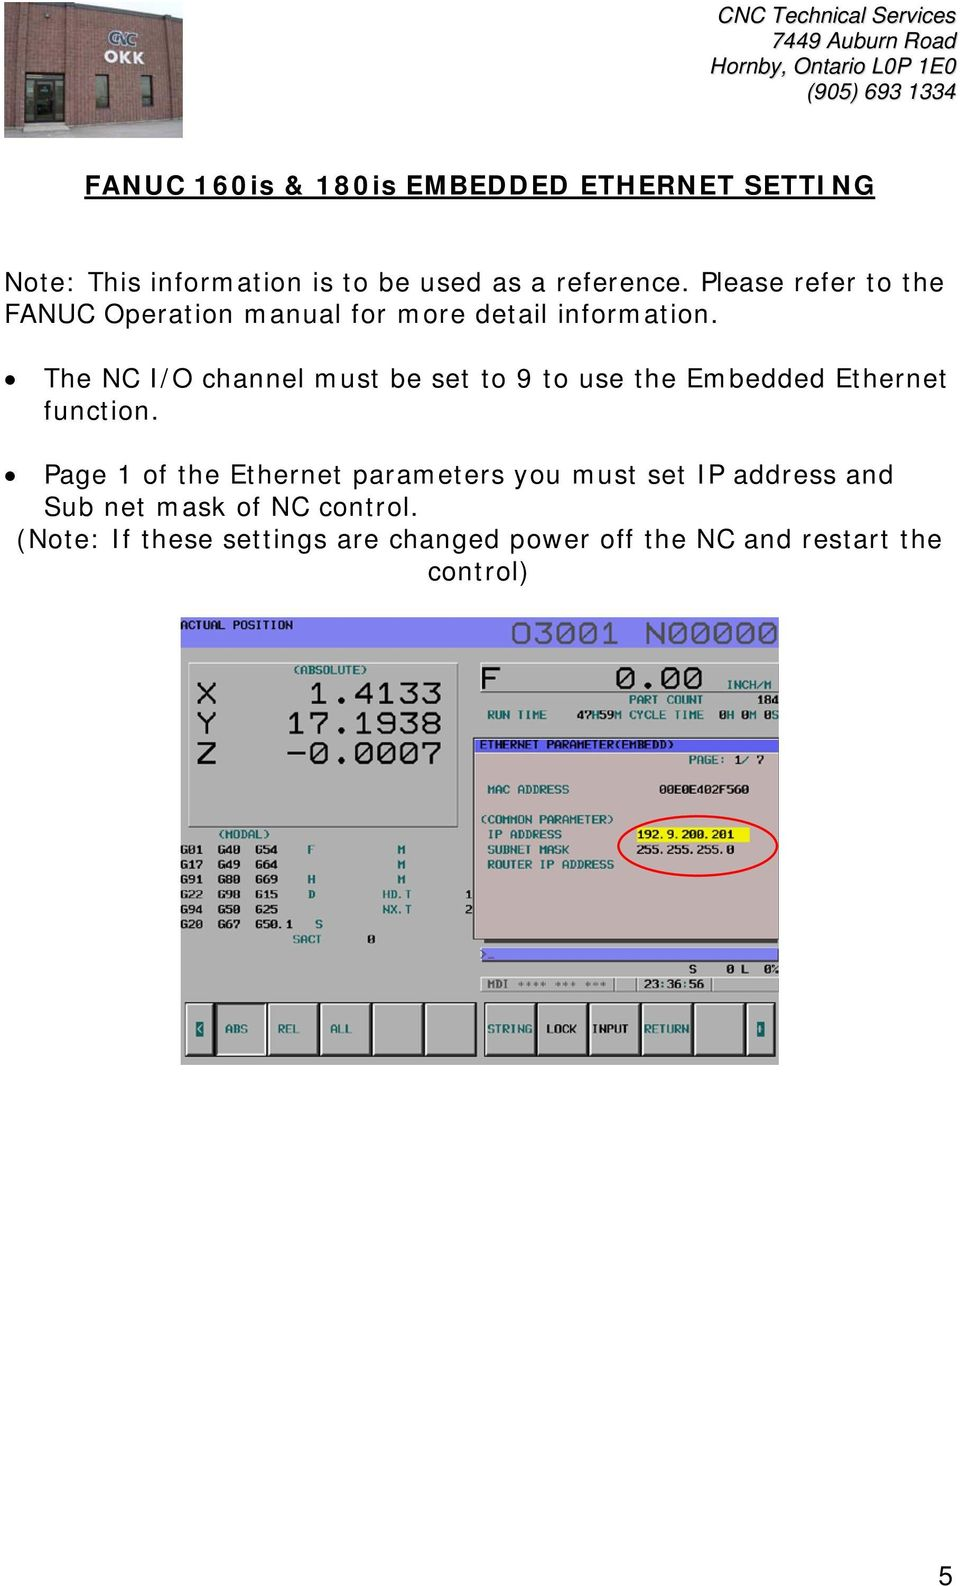 ftp server software for ethernet connection on fanuc 160is